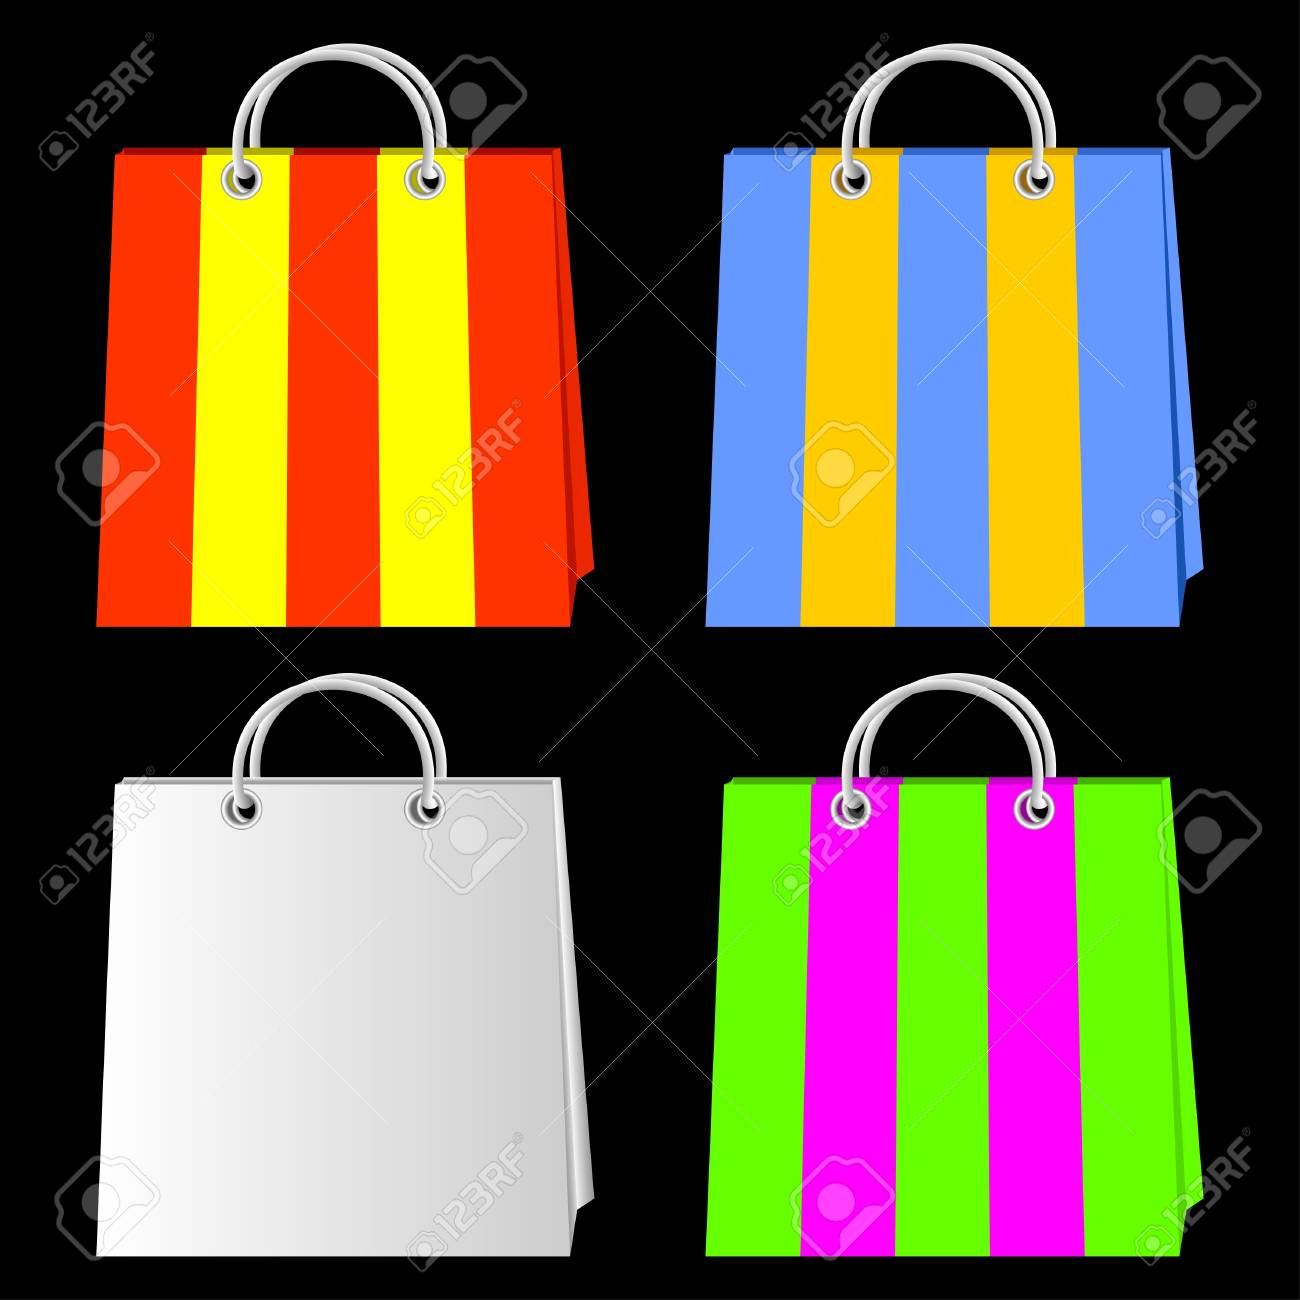 Color bags for purchases on a black background. Stock Vector - 9702978